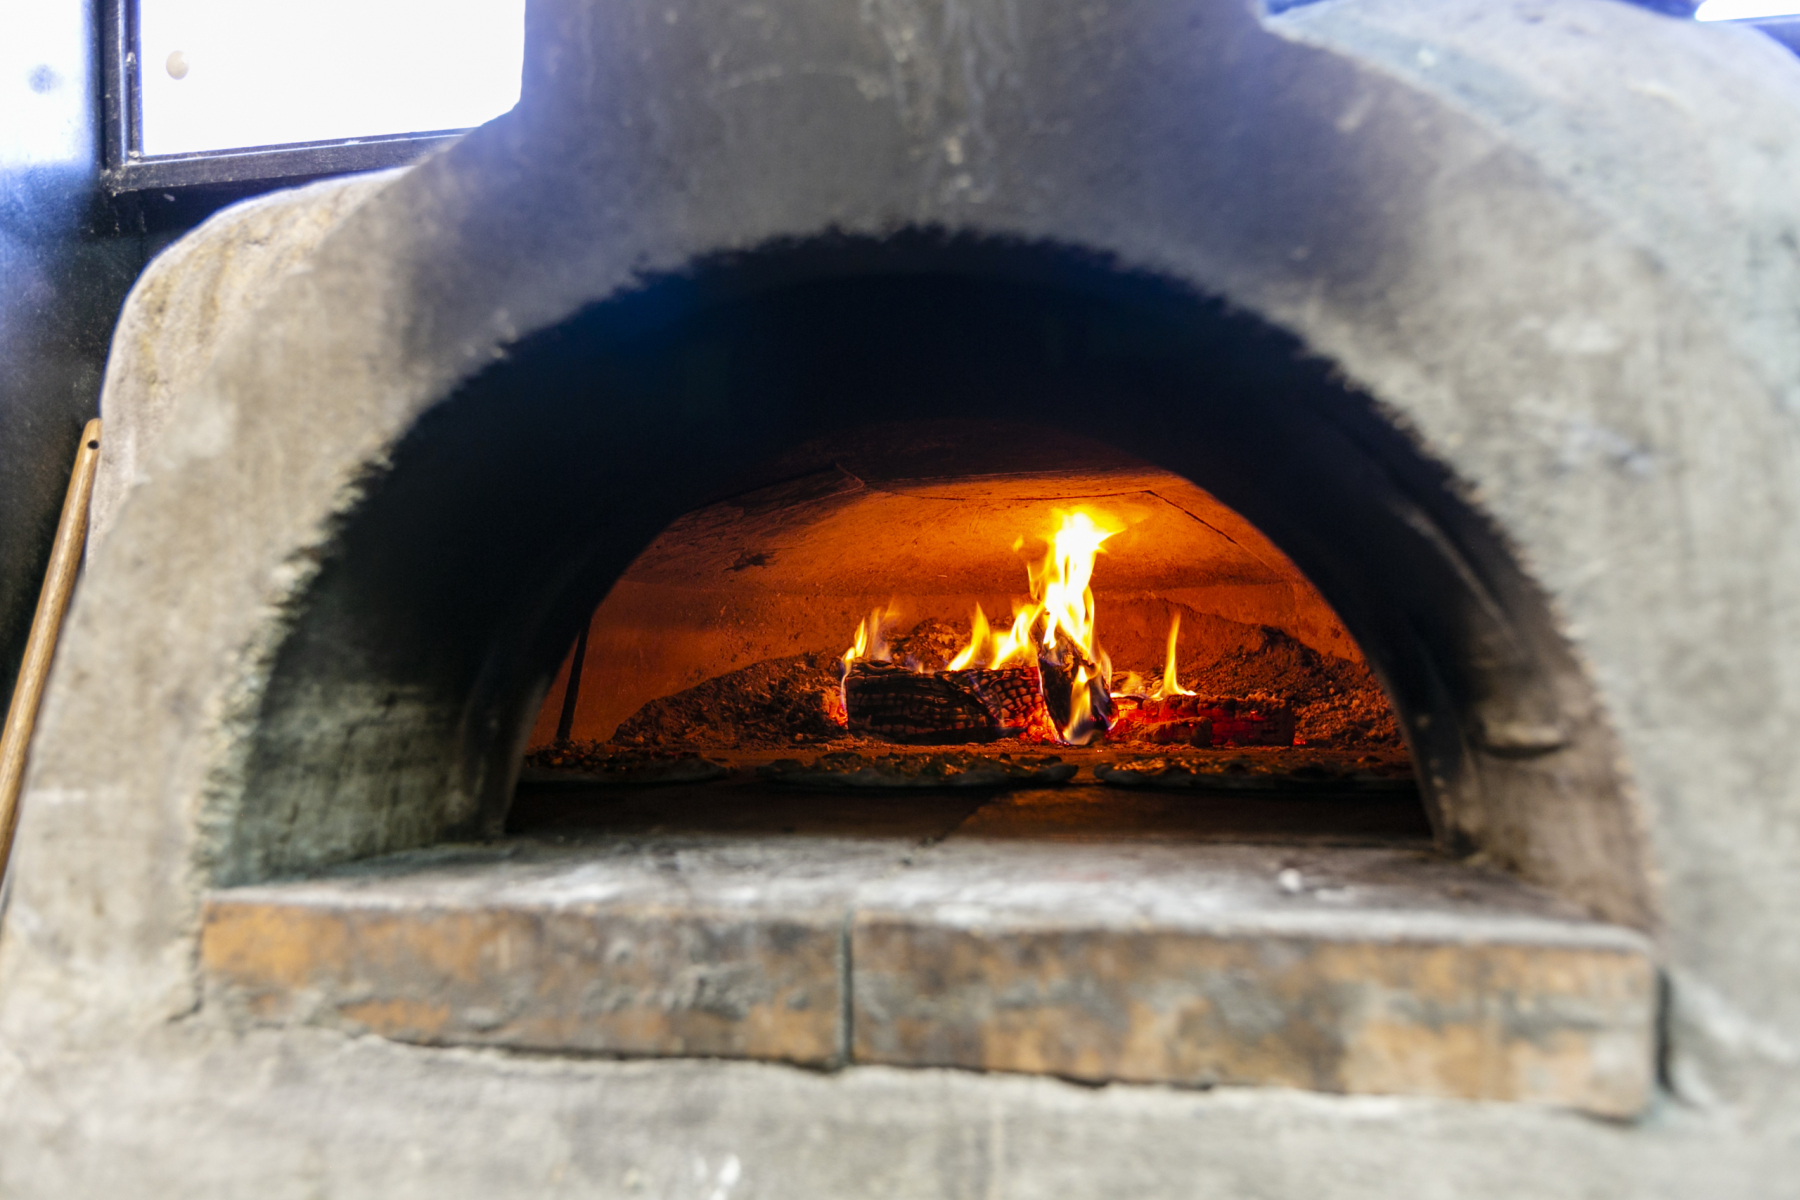 The MOD wood fired pizza oven